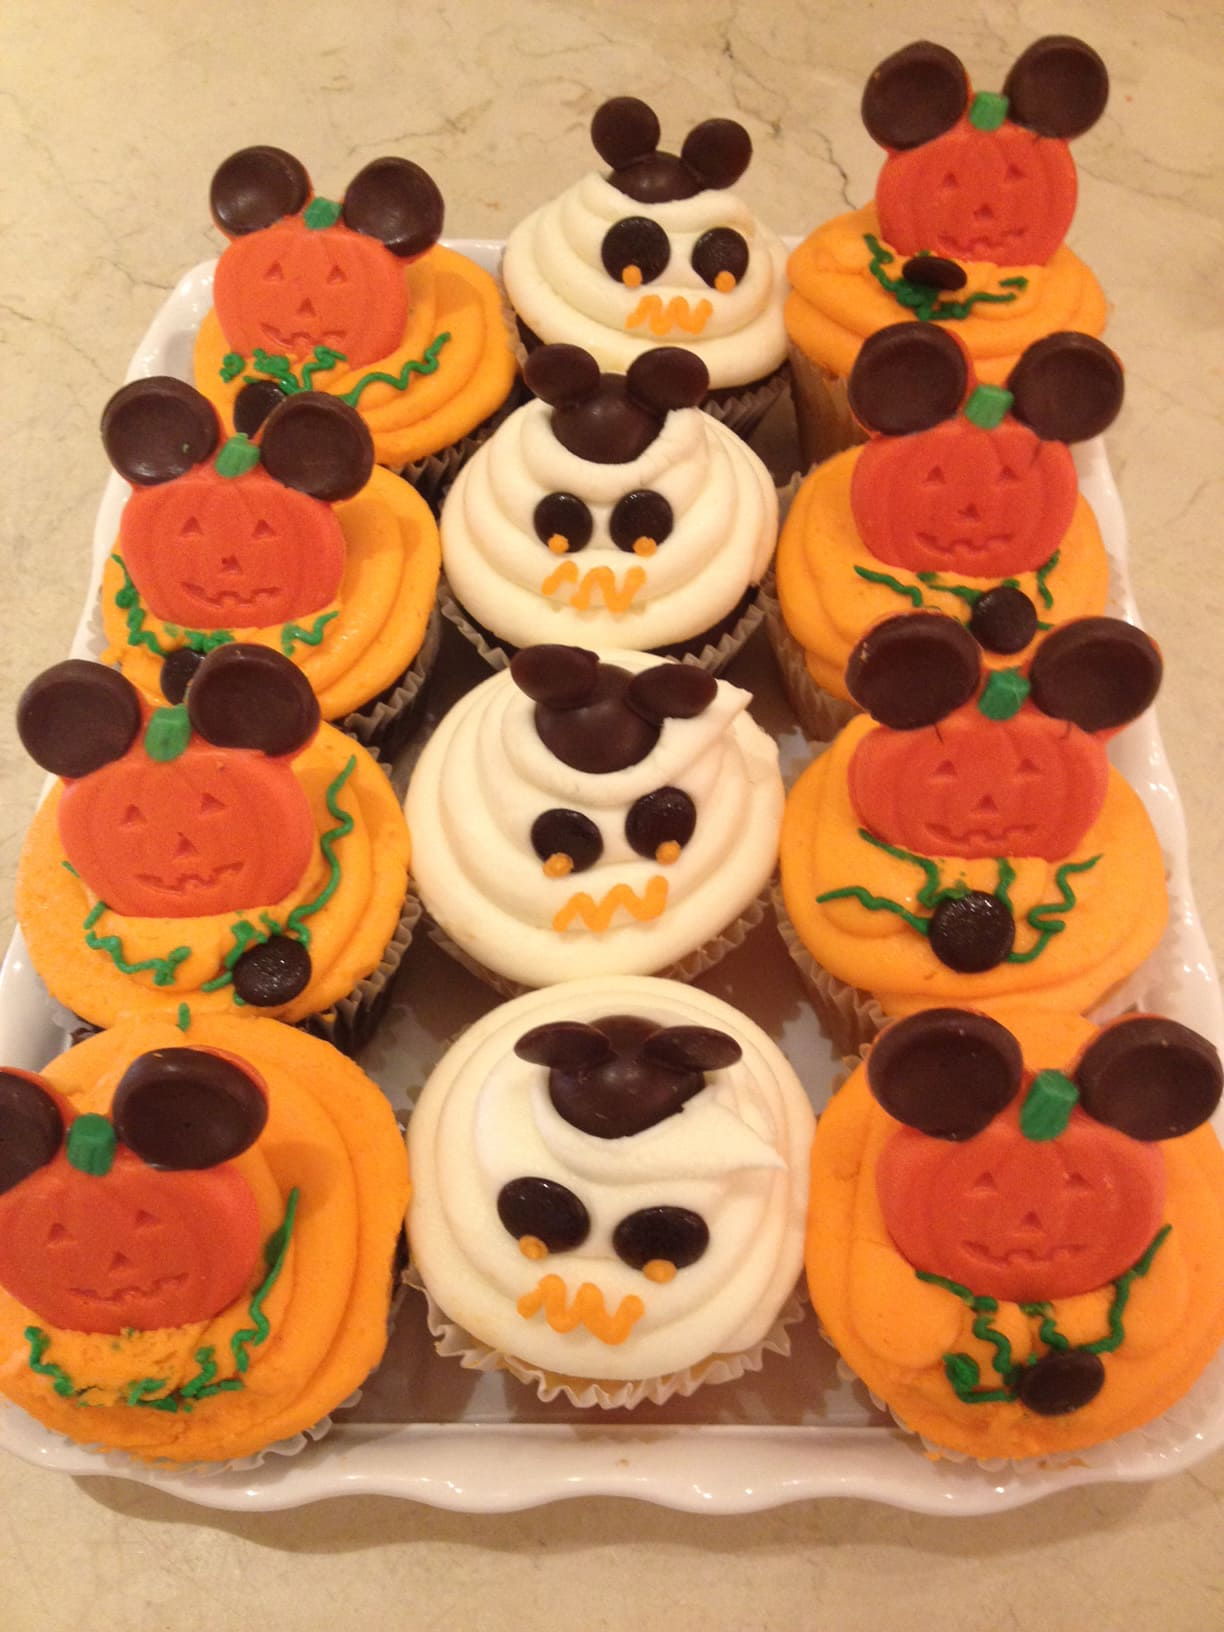 Halloween Cupcake at Disneyland Resort